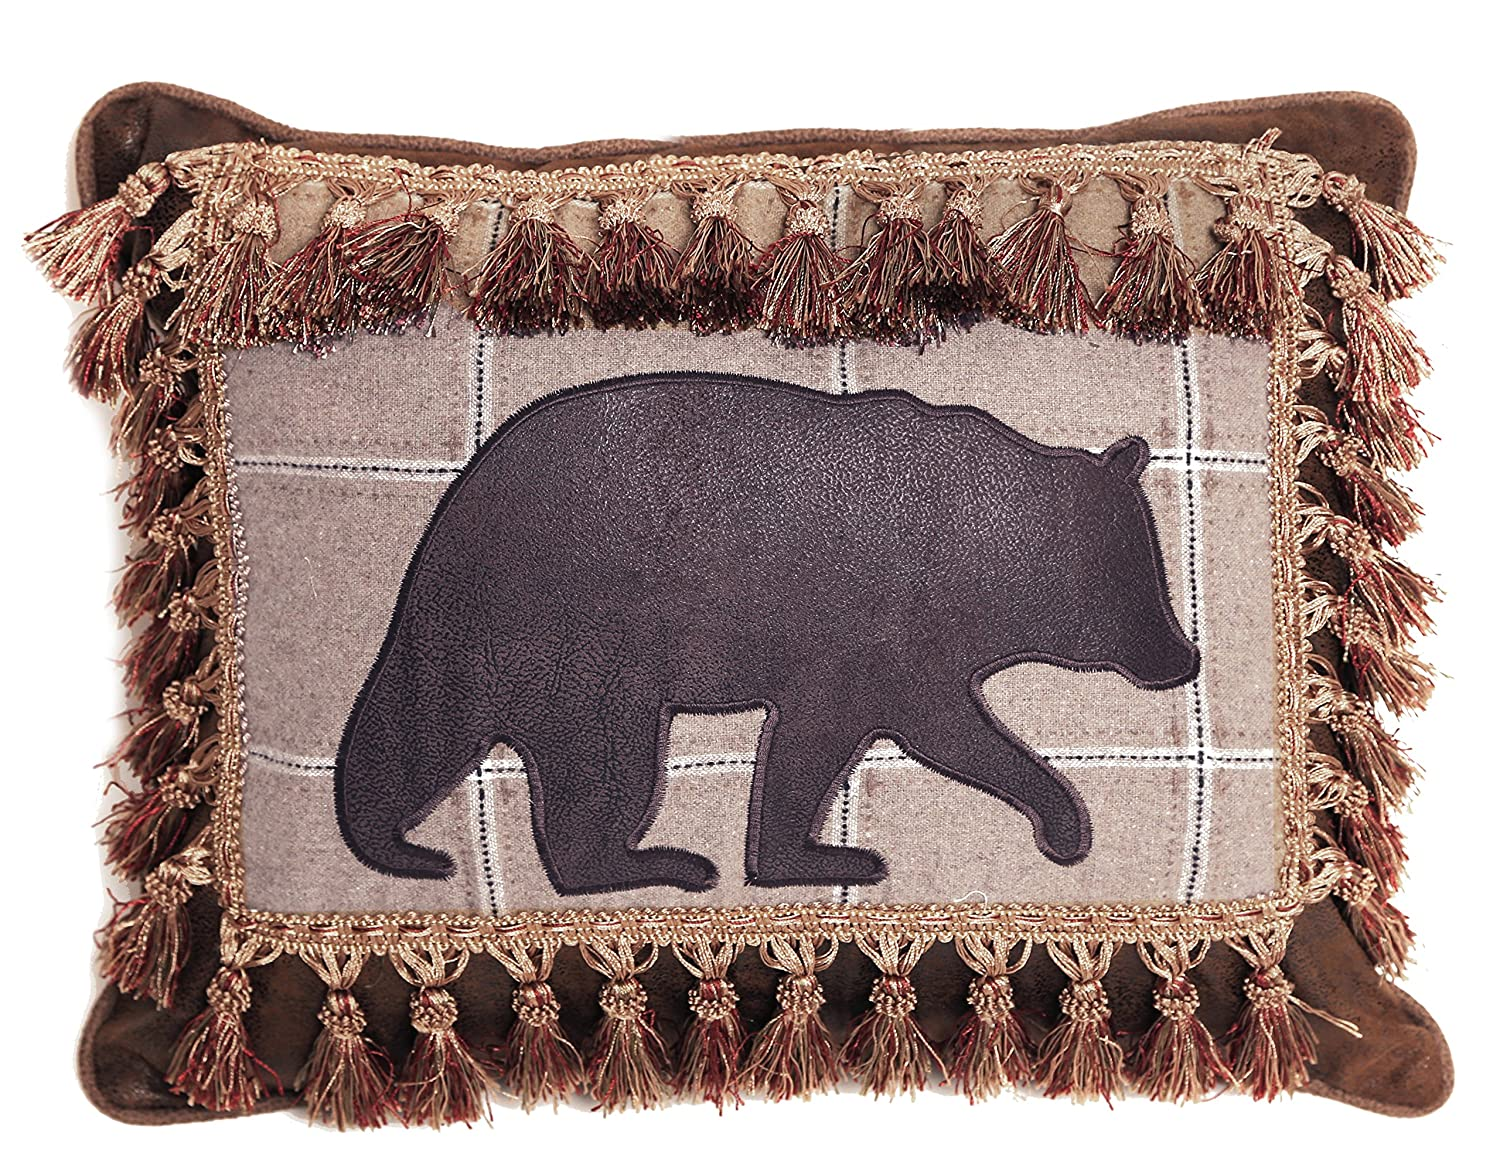 Carstens Bear with Tassel Fringe Pillow